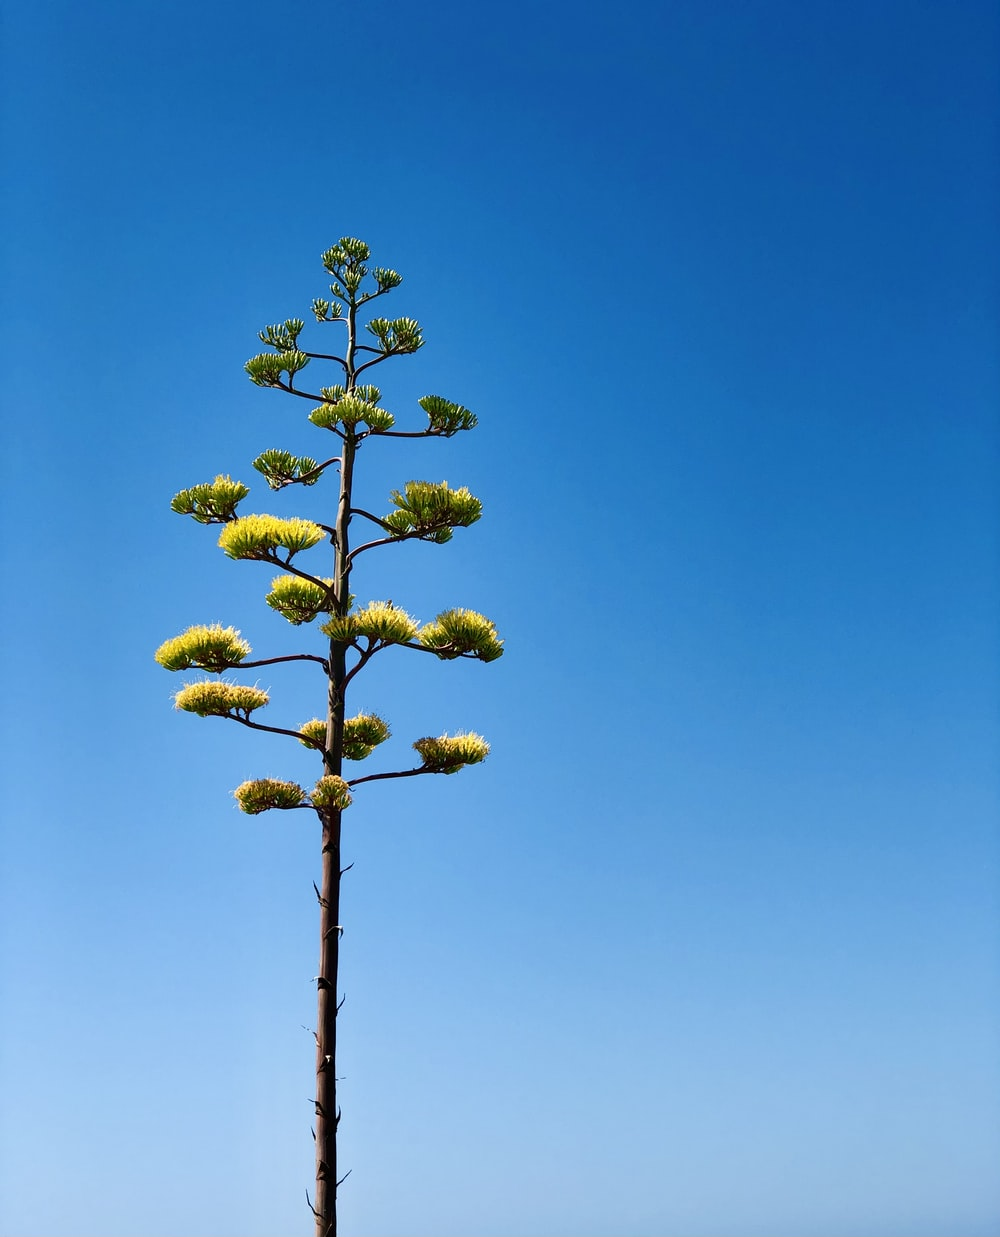 yellow flowers on brown wooden stick under blue sky during daytime